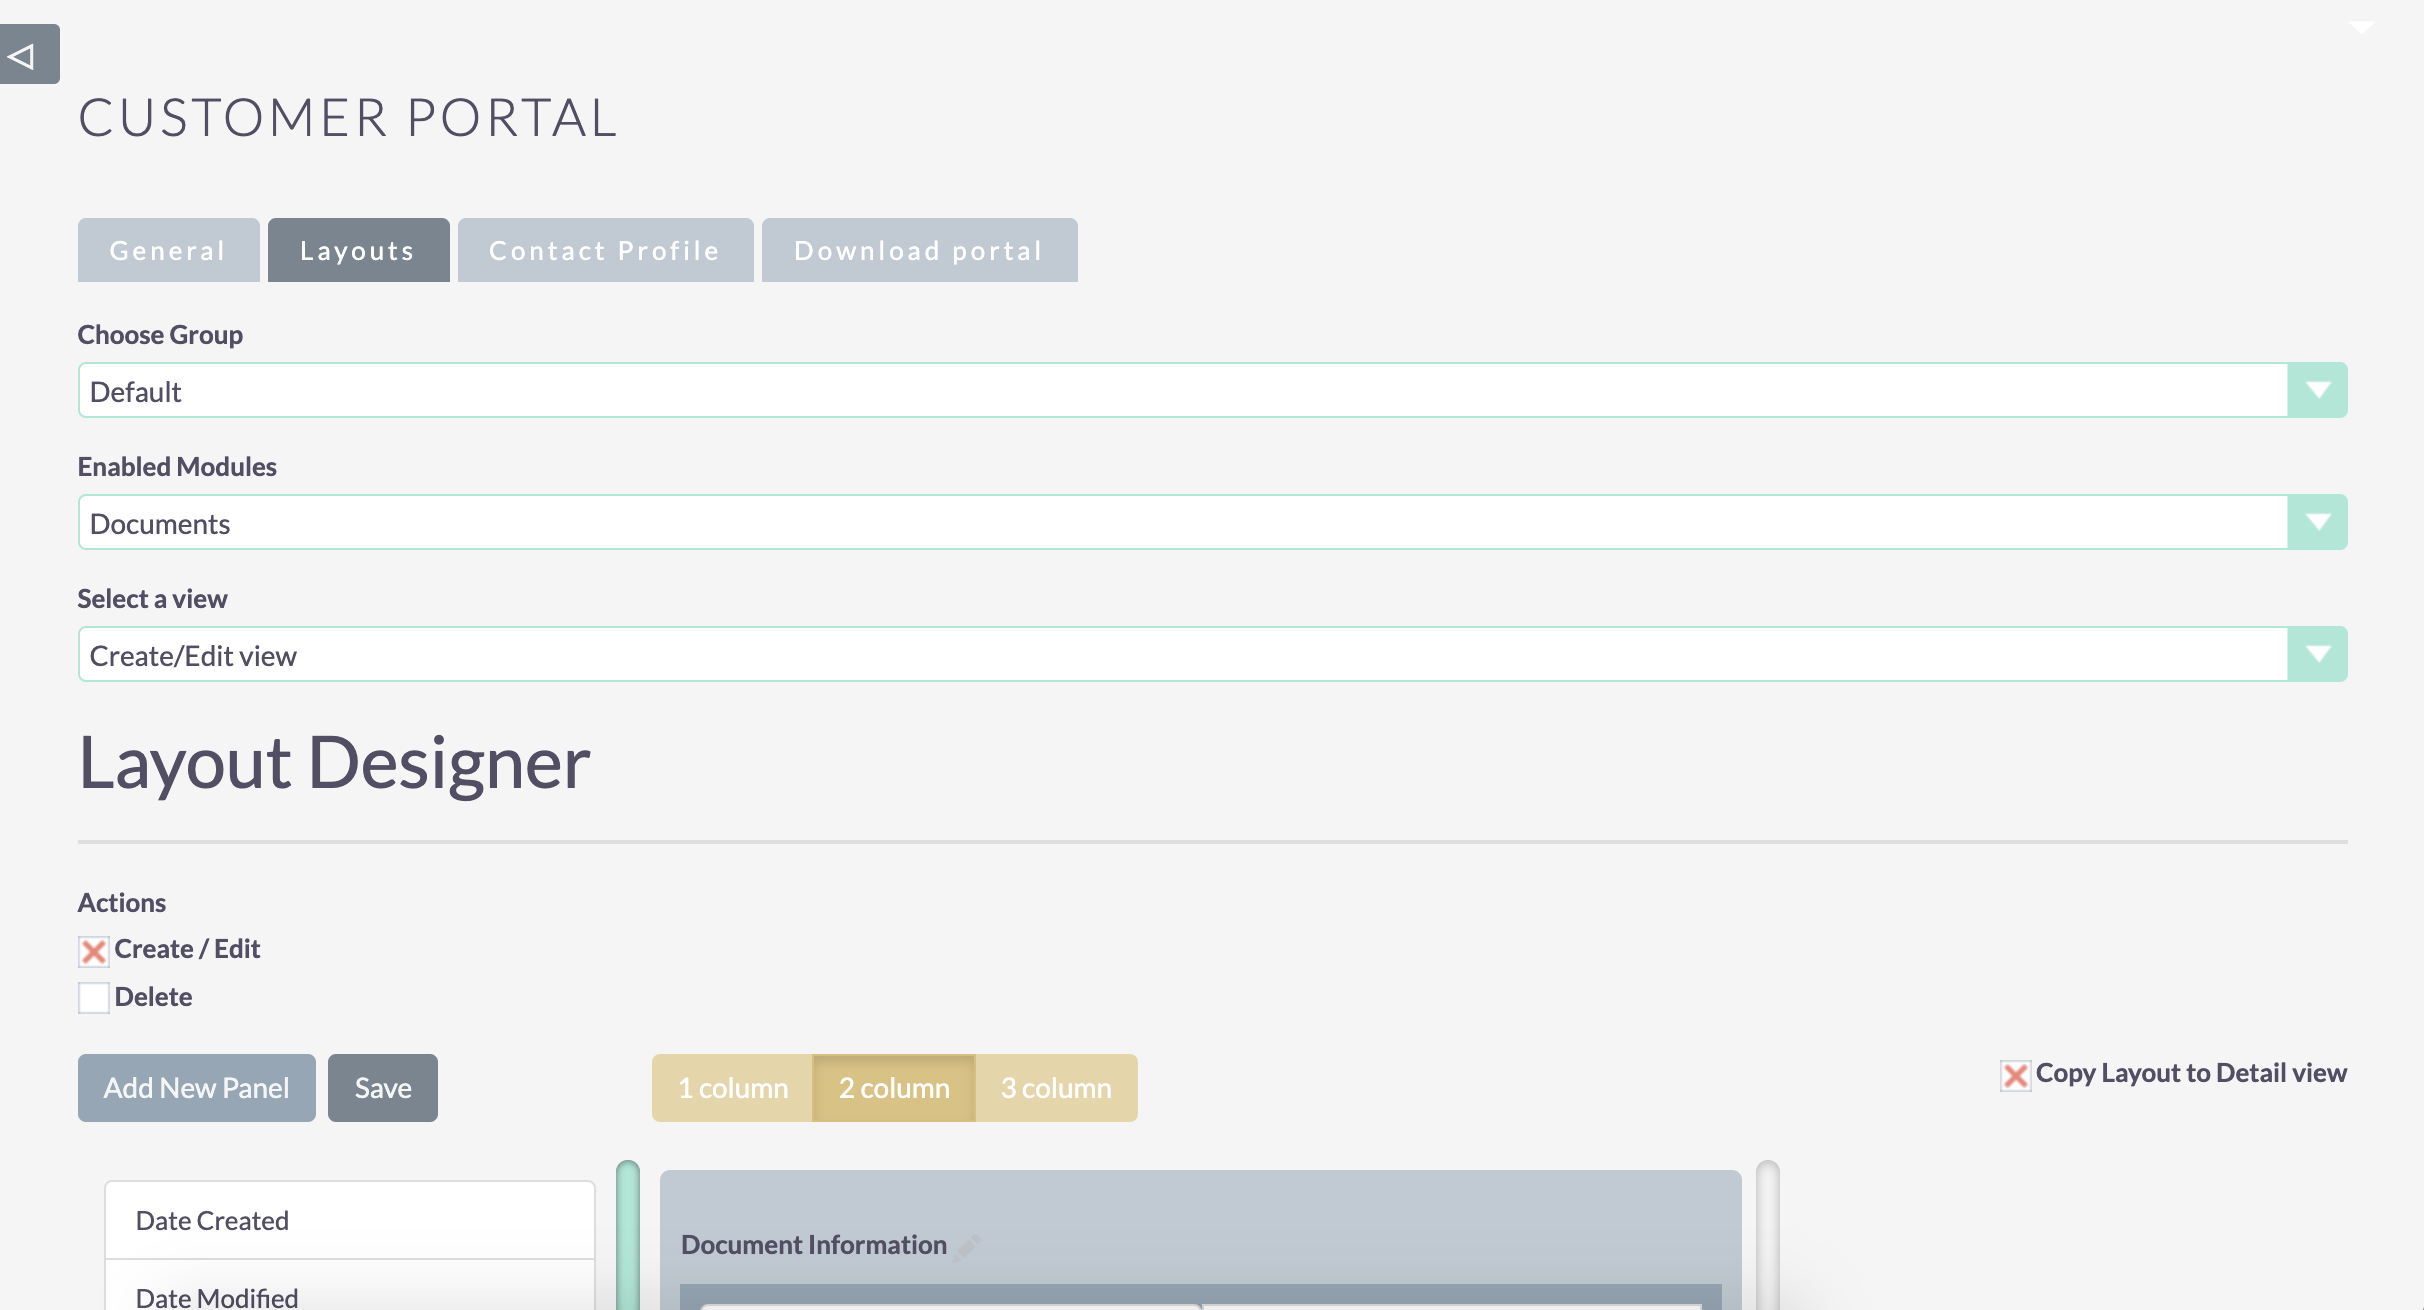 Customer Portal Layout Configuration - 1